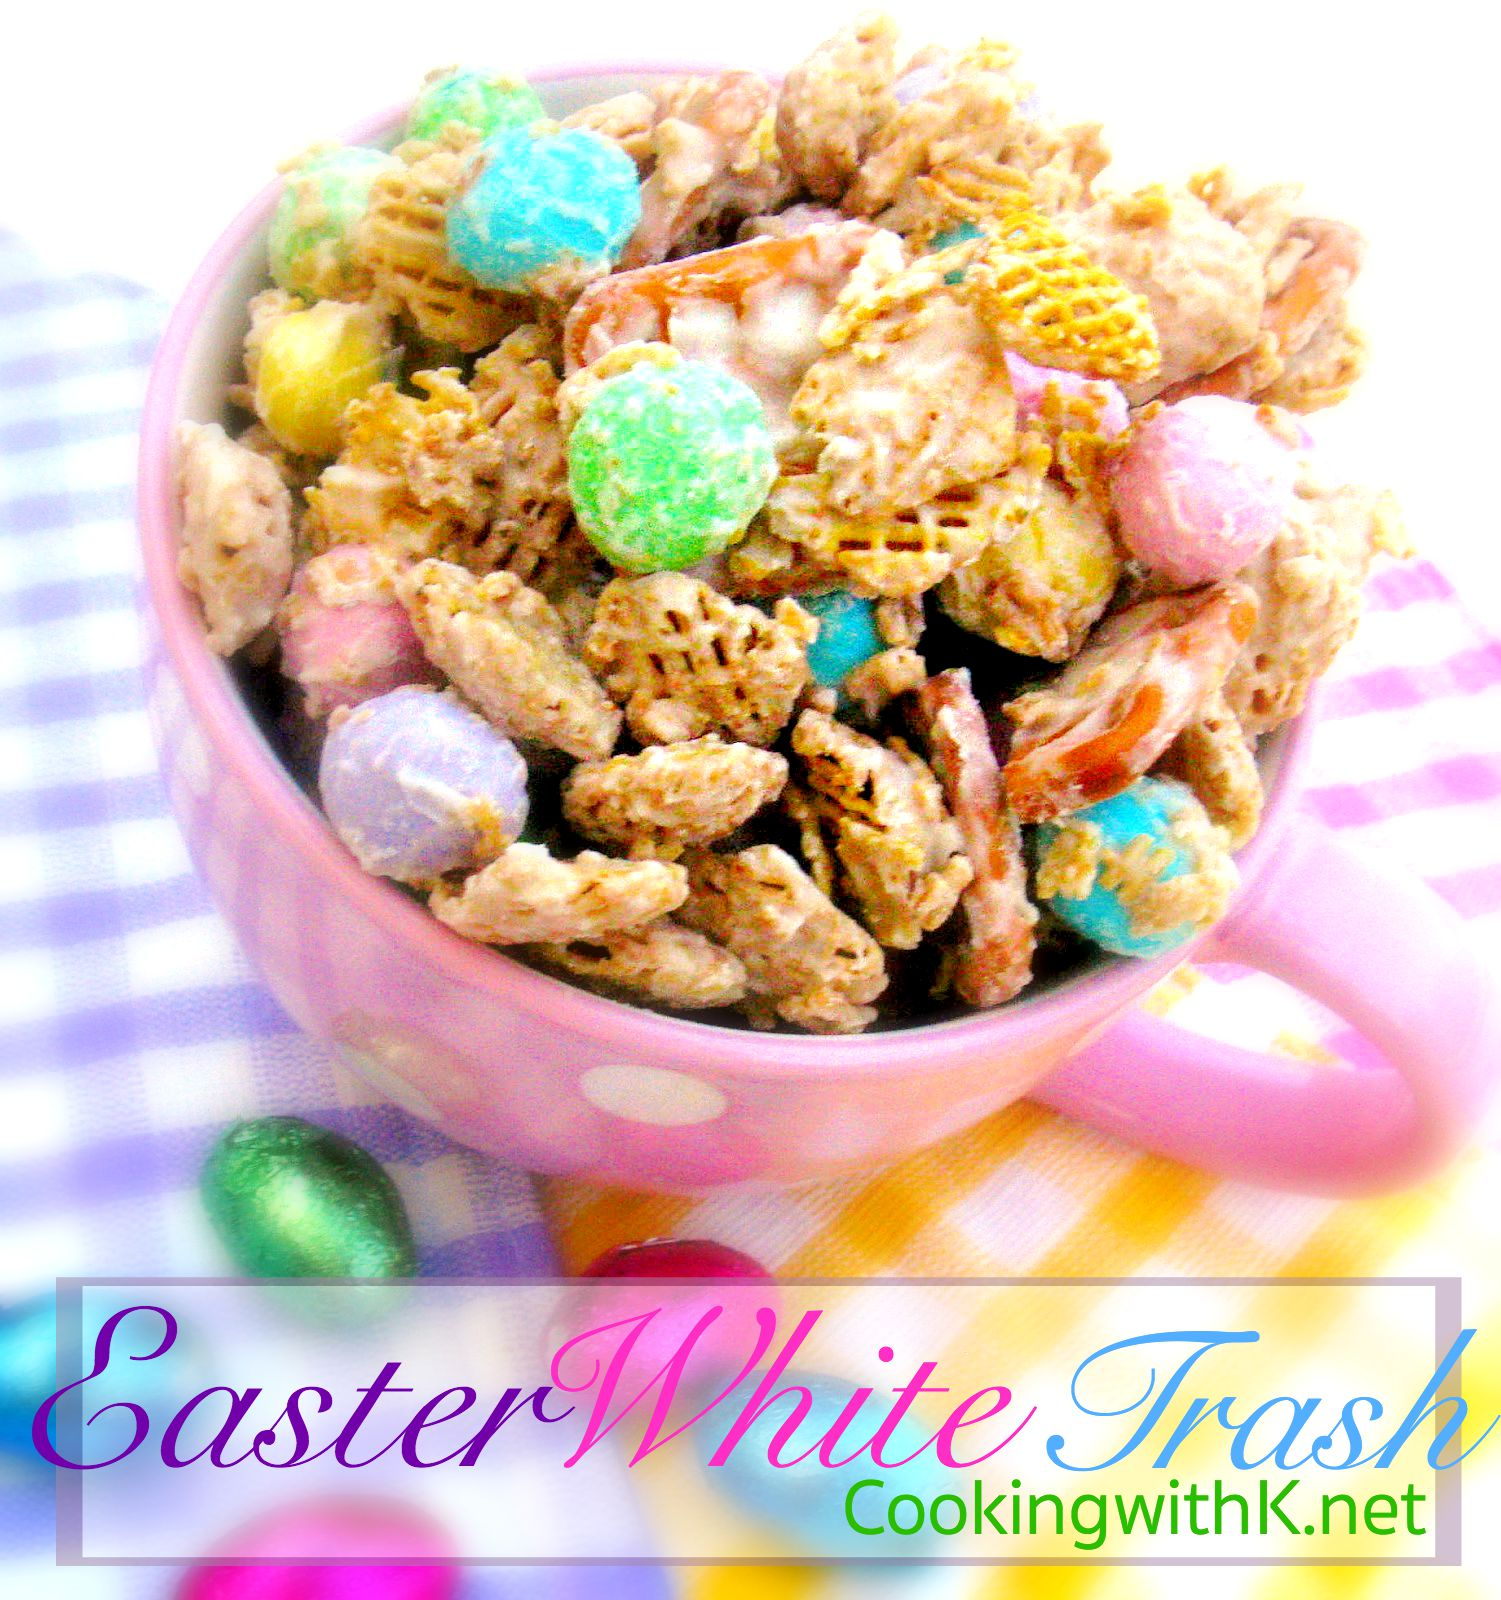 Cooking with k easter white trash and cute gift bags the basic recipe for the trash is the same each time i just change the color of the mms for what holiday we are celebrating for easter i use the cute negle Gallery